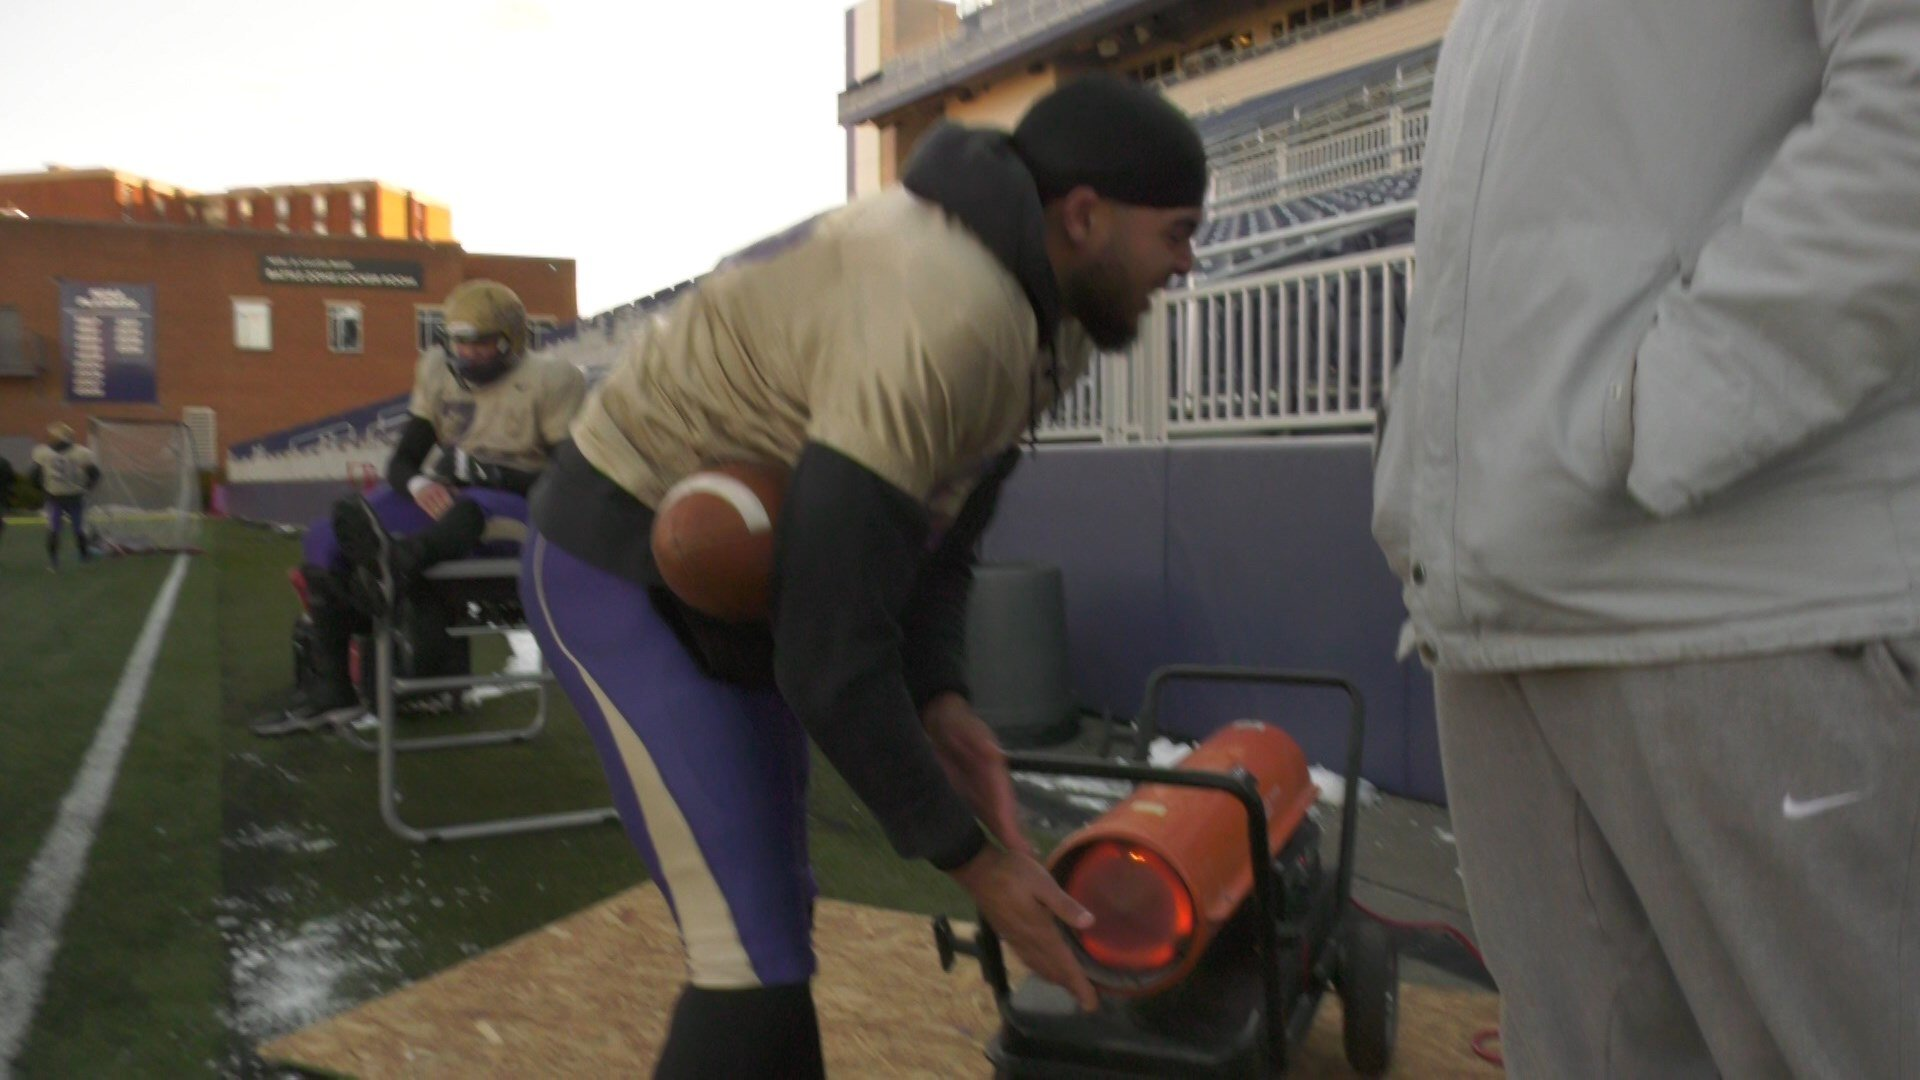 JMU used heaters on the sidelines at practice